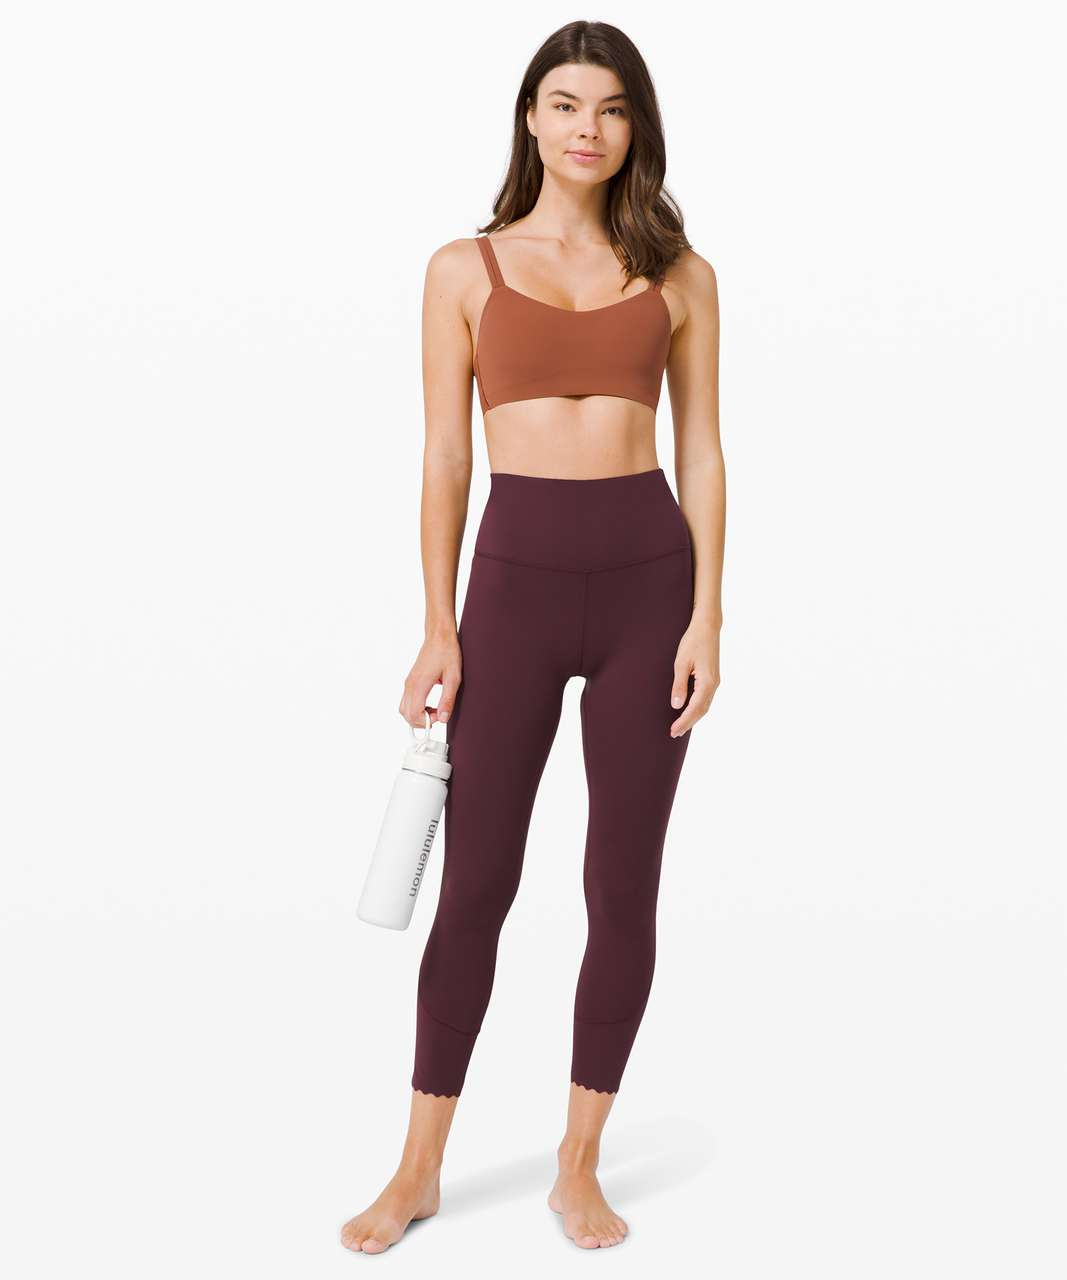 """Lululemon Align High-Rise Pant 25"""" *Scallop - Cassis"""